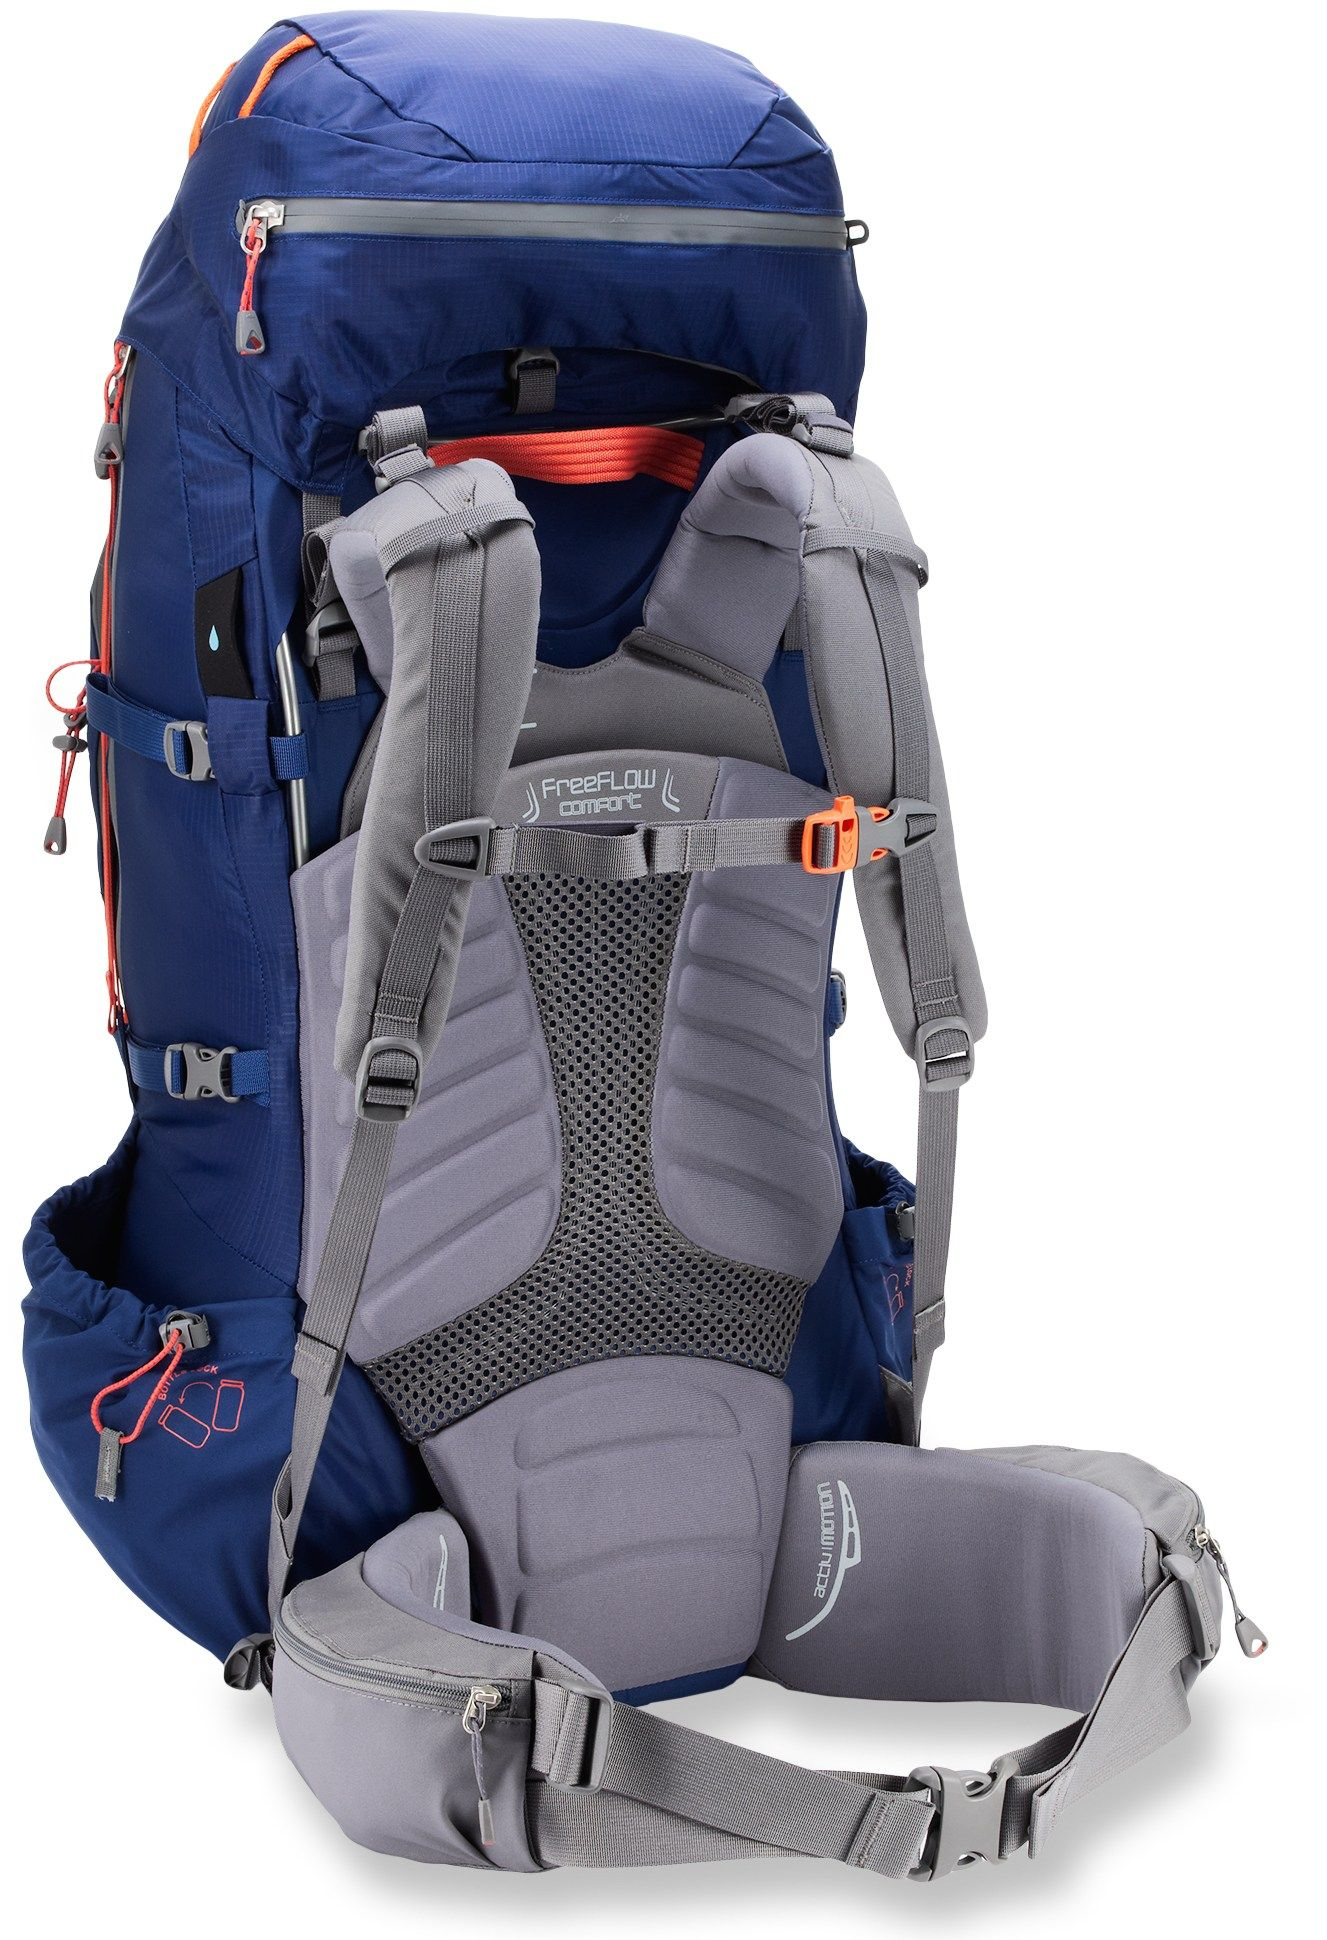 REI Crestrail 70 Pack Free Shipping at REI $239